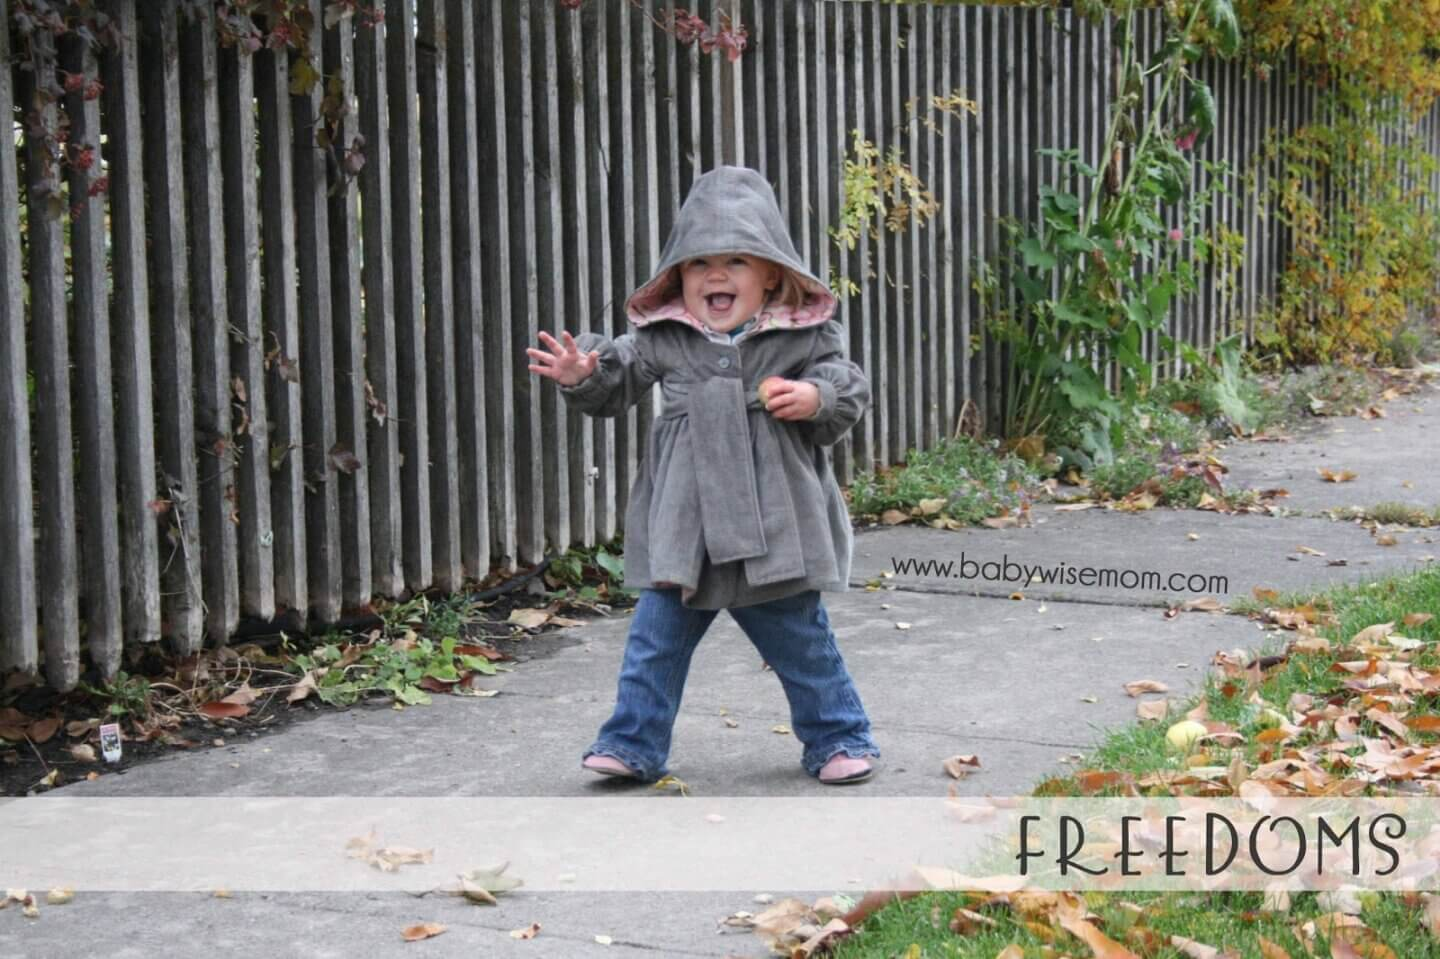 Toddler walking down the sidewalk